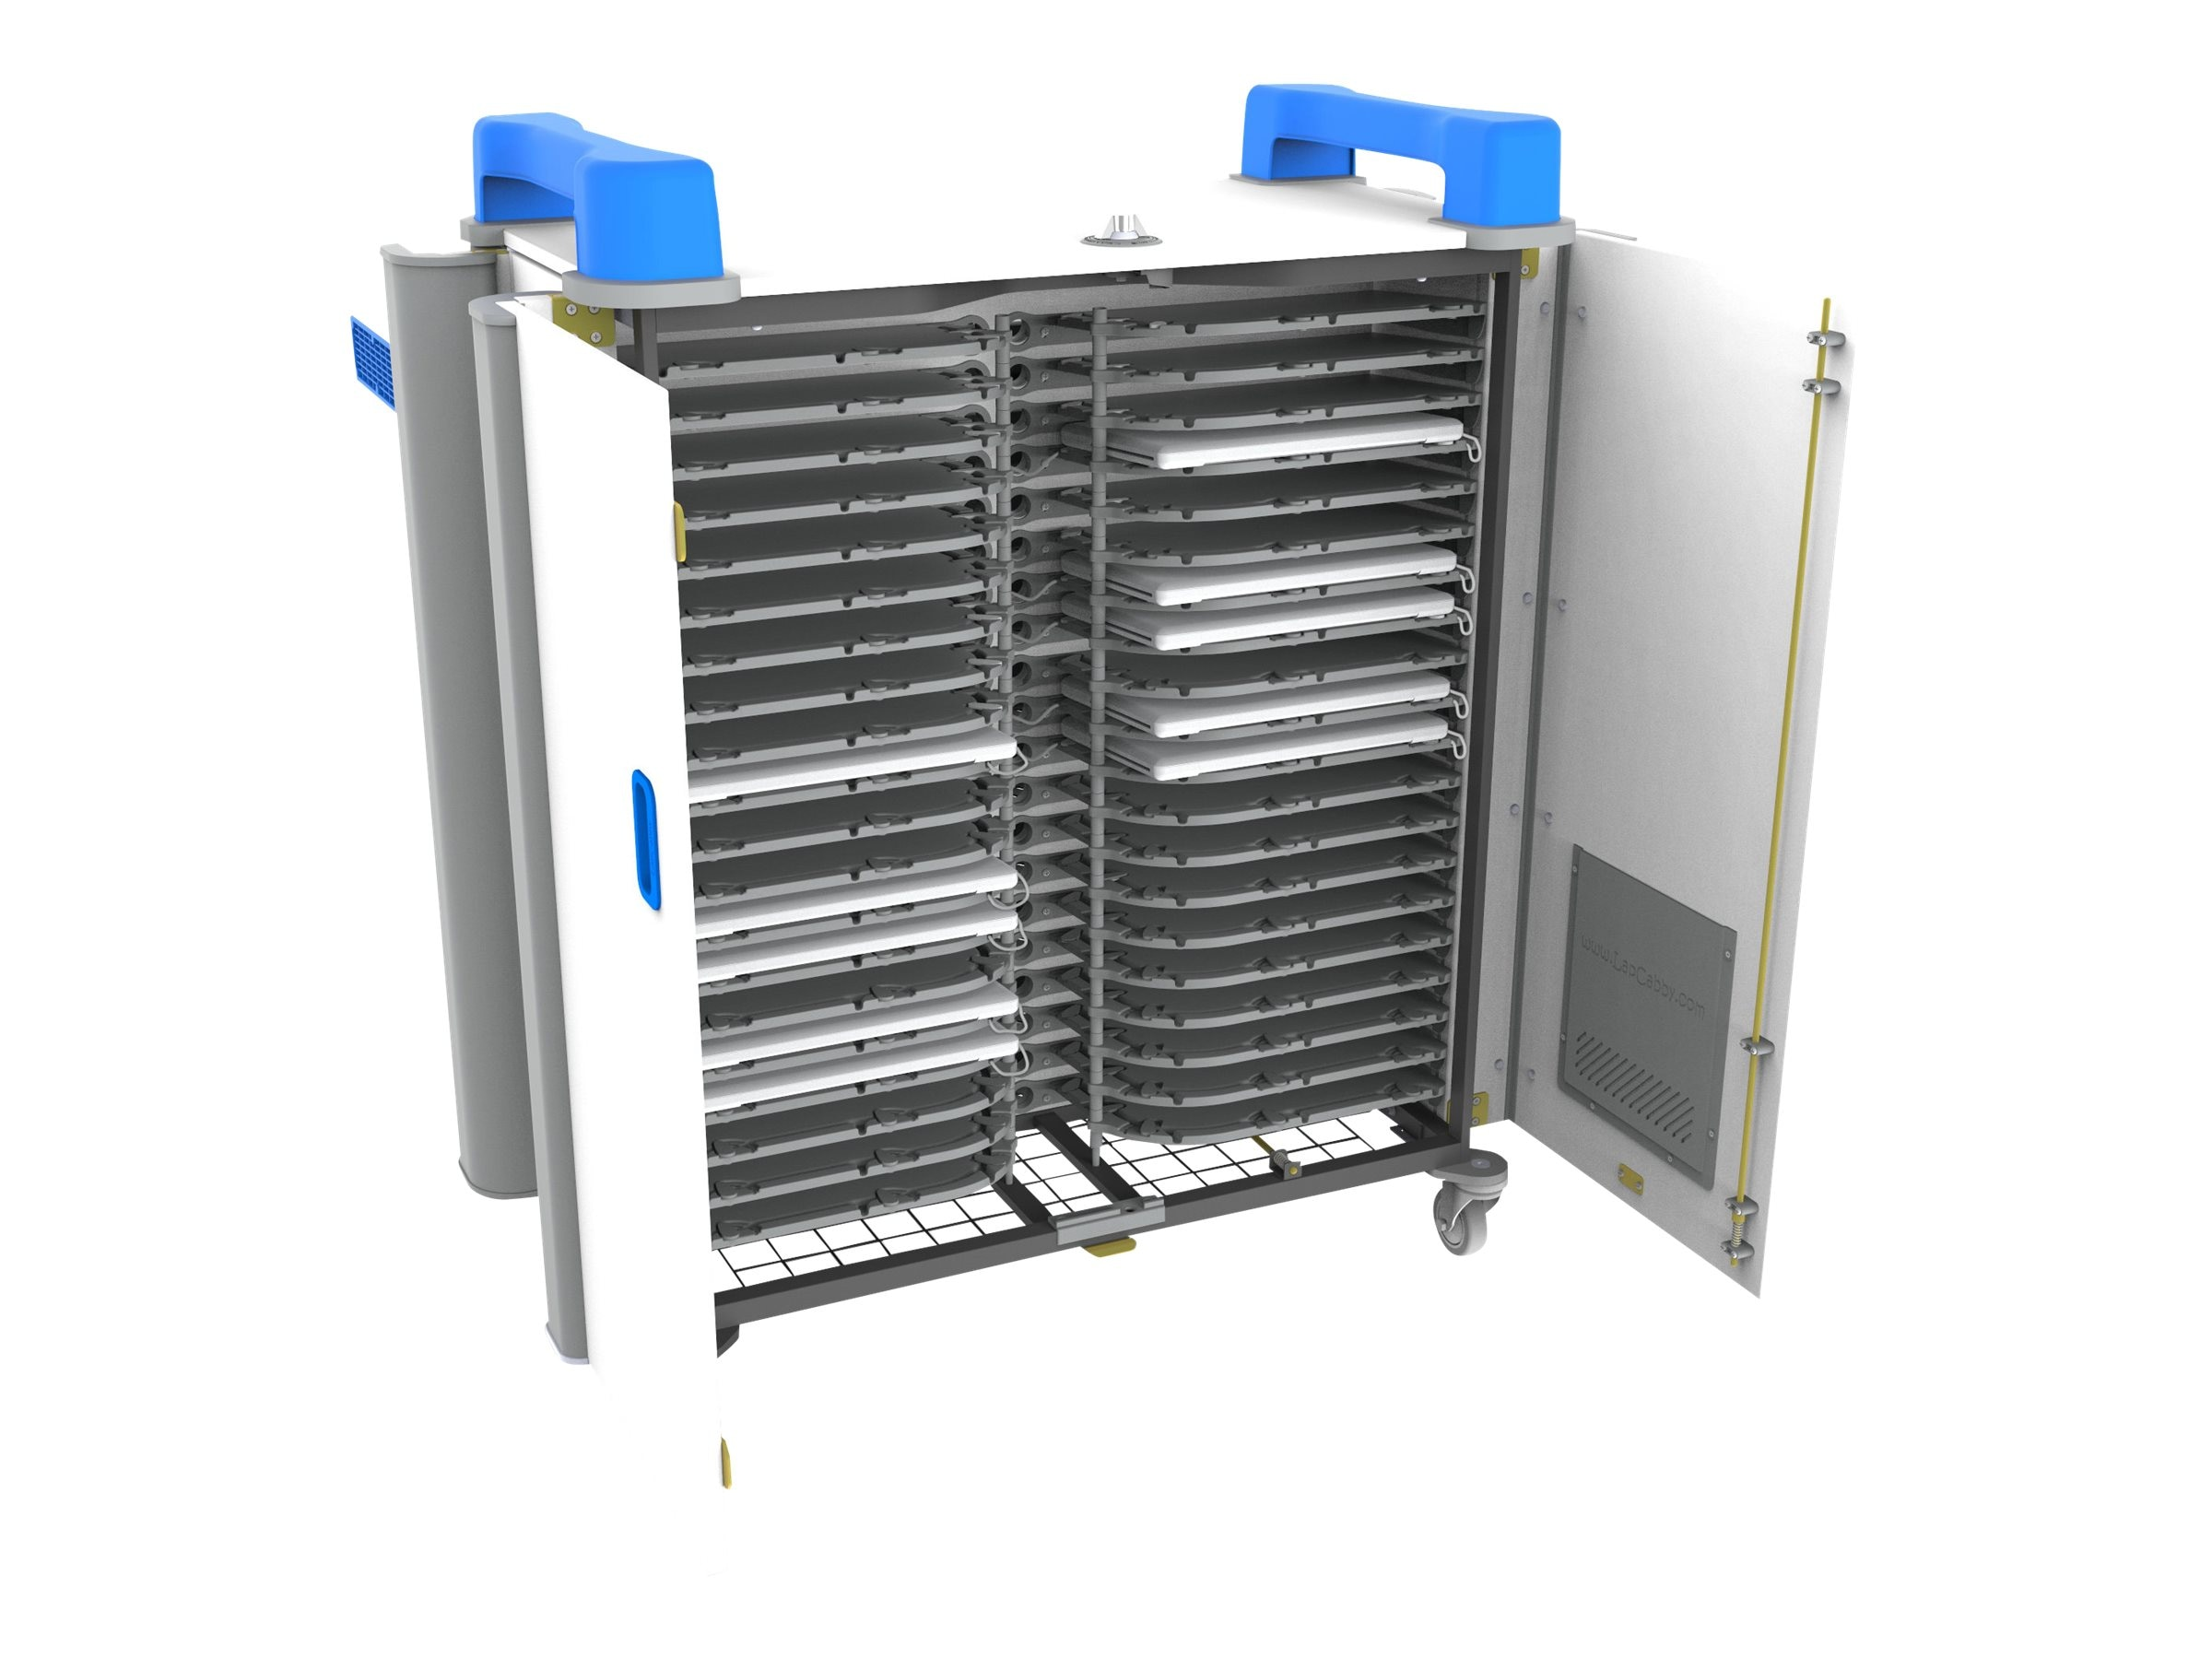 LapCabby 40-Unit UniCabby 40H Chromebook, Tablet, iPad, Laptop Store and Charge Cart